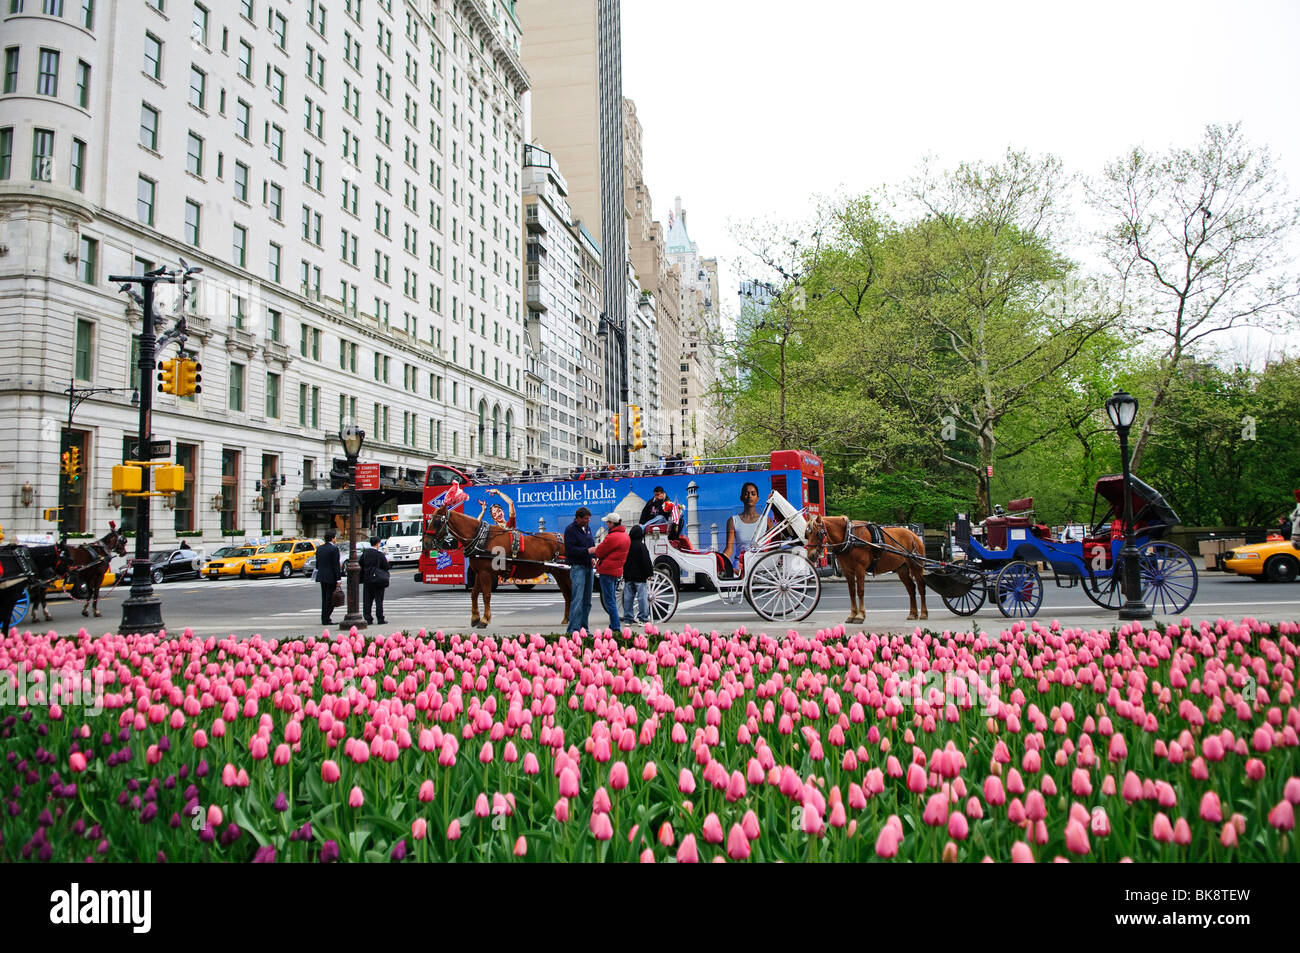 NEW YORK, NY - Tulips and carriages in New York's Central Park in the spring. Stock Photo